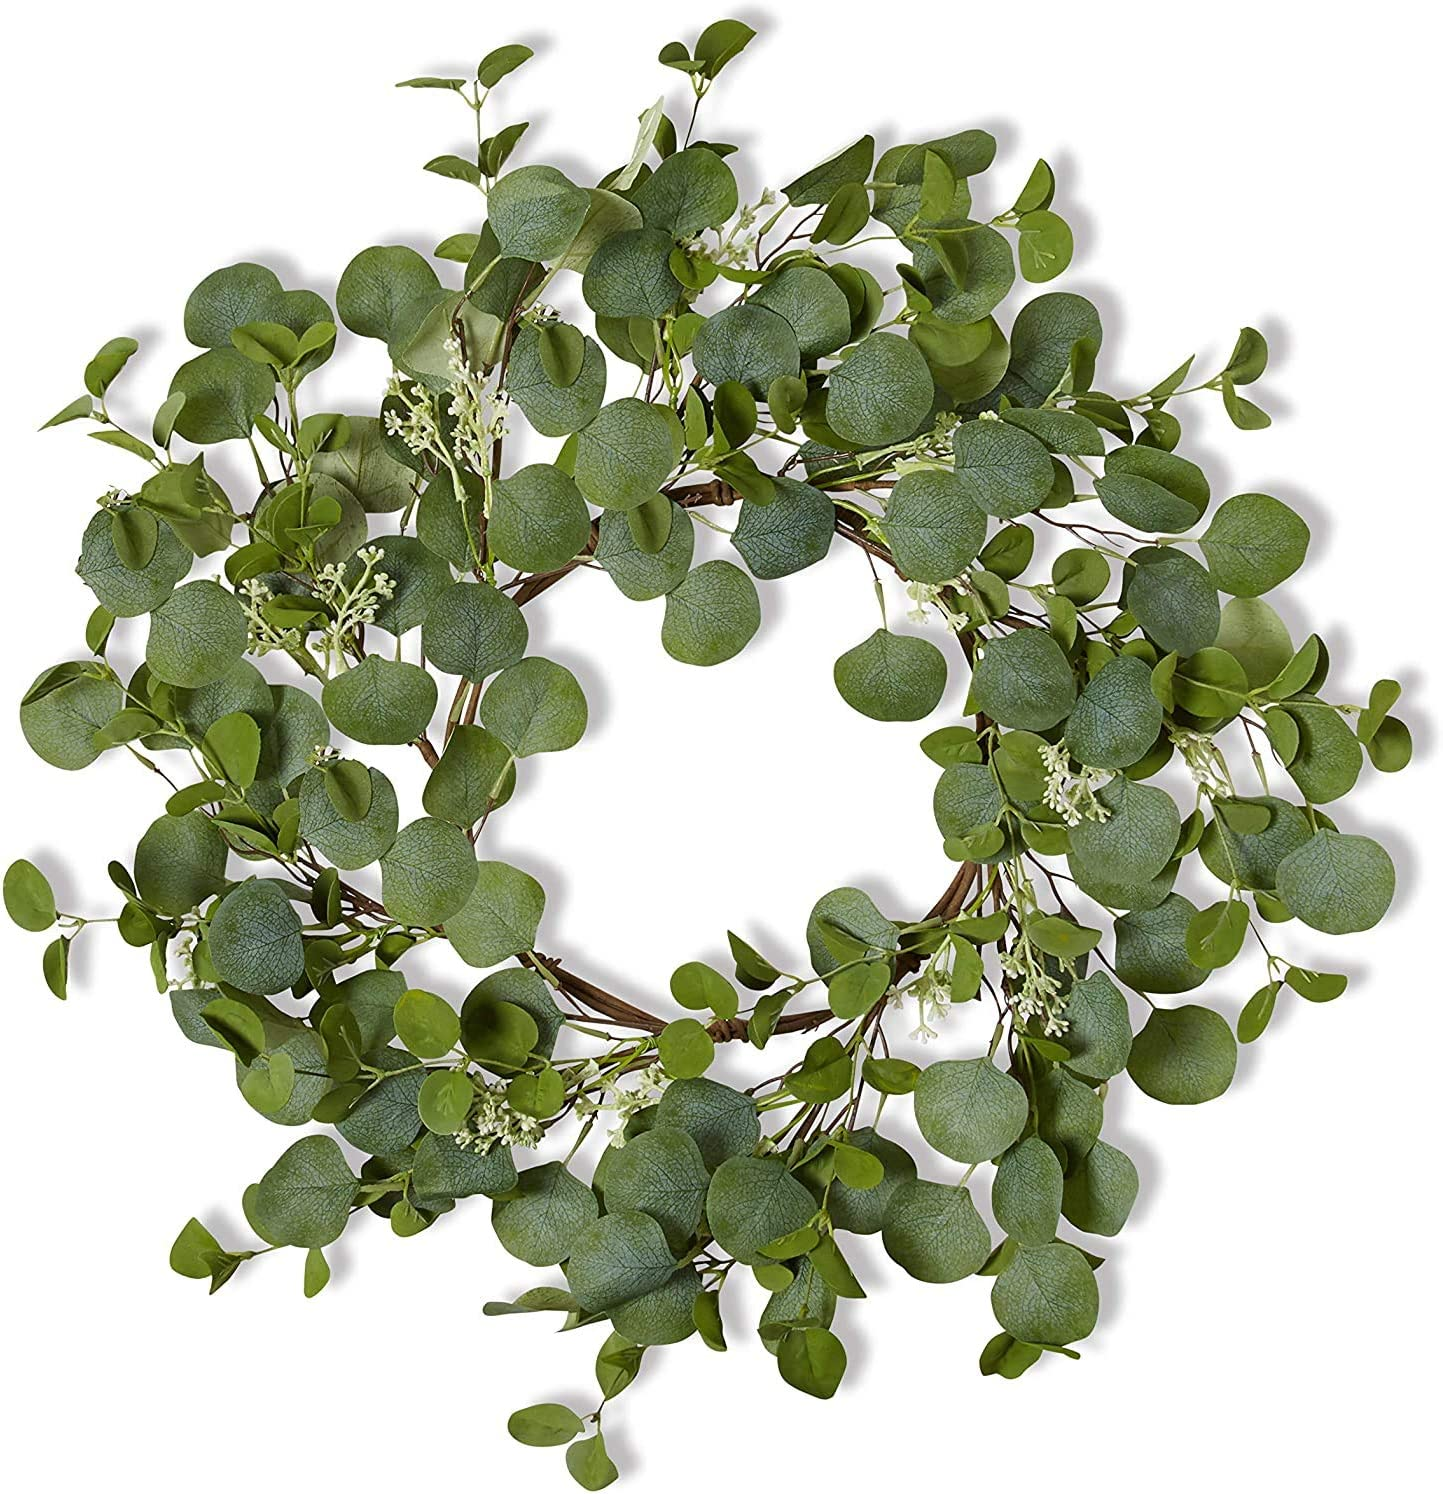 Farmhouse Eucalyptus Wreath - Round - 22 Inch - Artificial Greenery - Beautiful Soft Green - Bendable - Front Door Decoration - Rustic Indoor Decor - Kitchen - Natural Home Wall Decor - Spring/Summer